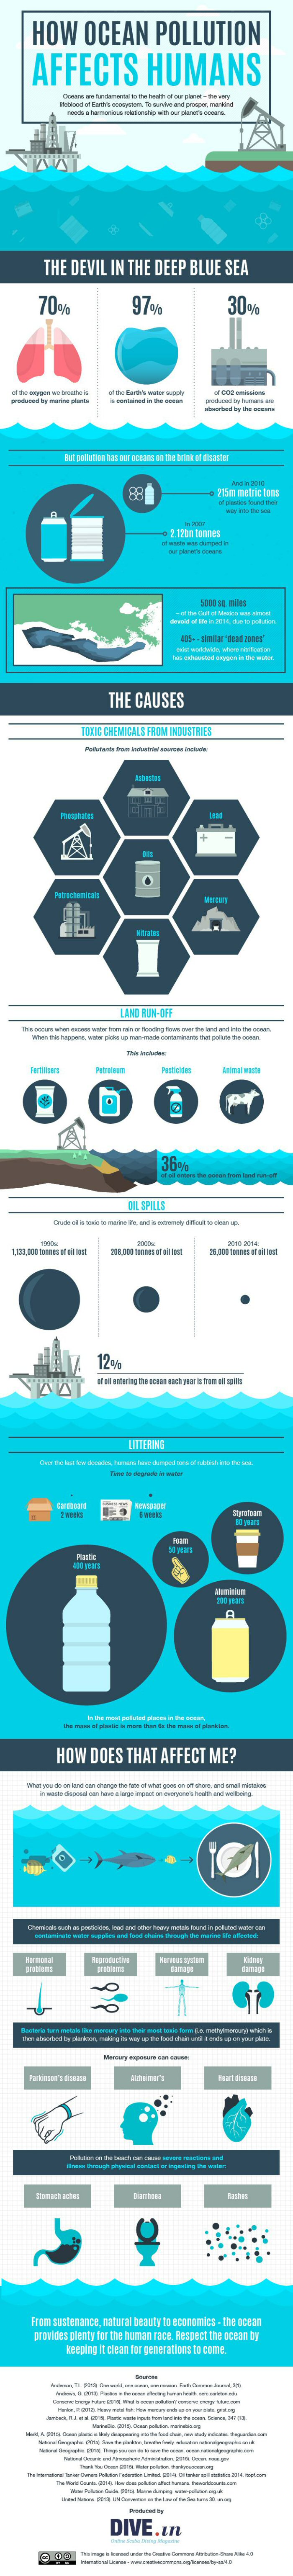 How Ocean Pollution Affects Humans - 10 Shocking Infographics About Plastic Waste In The Oceans